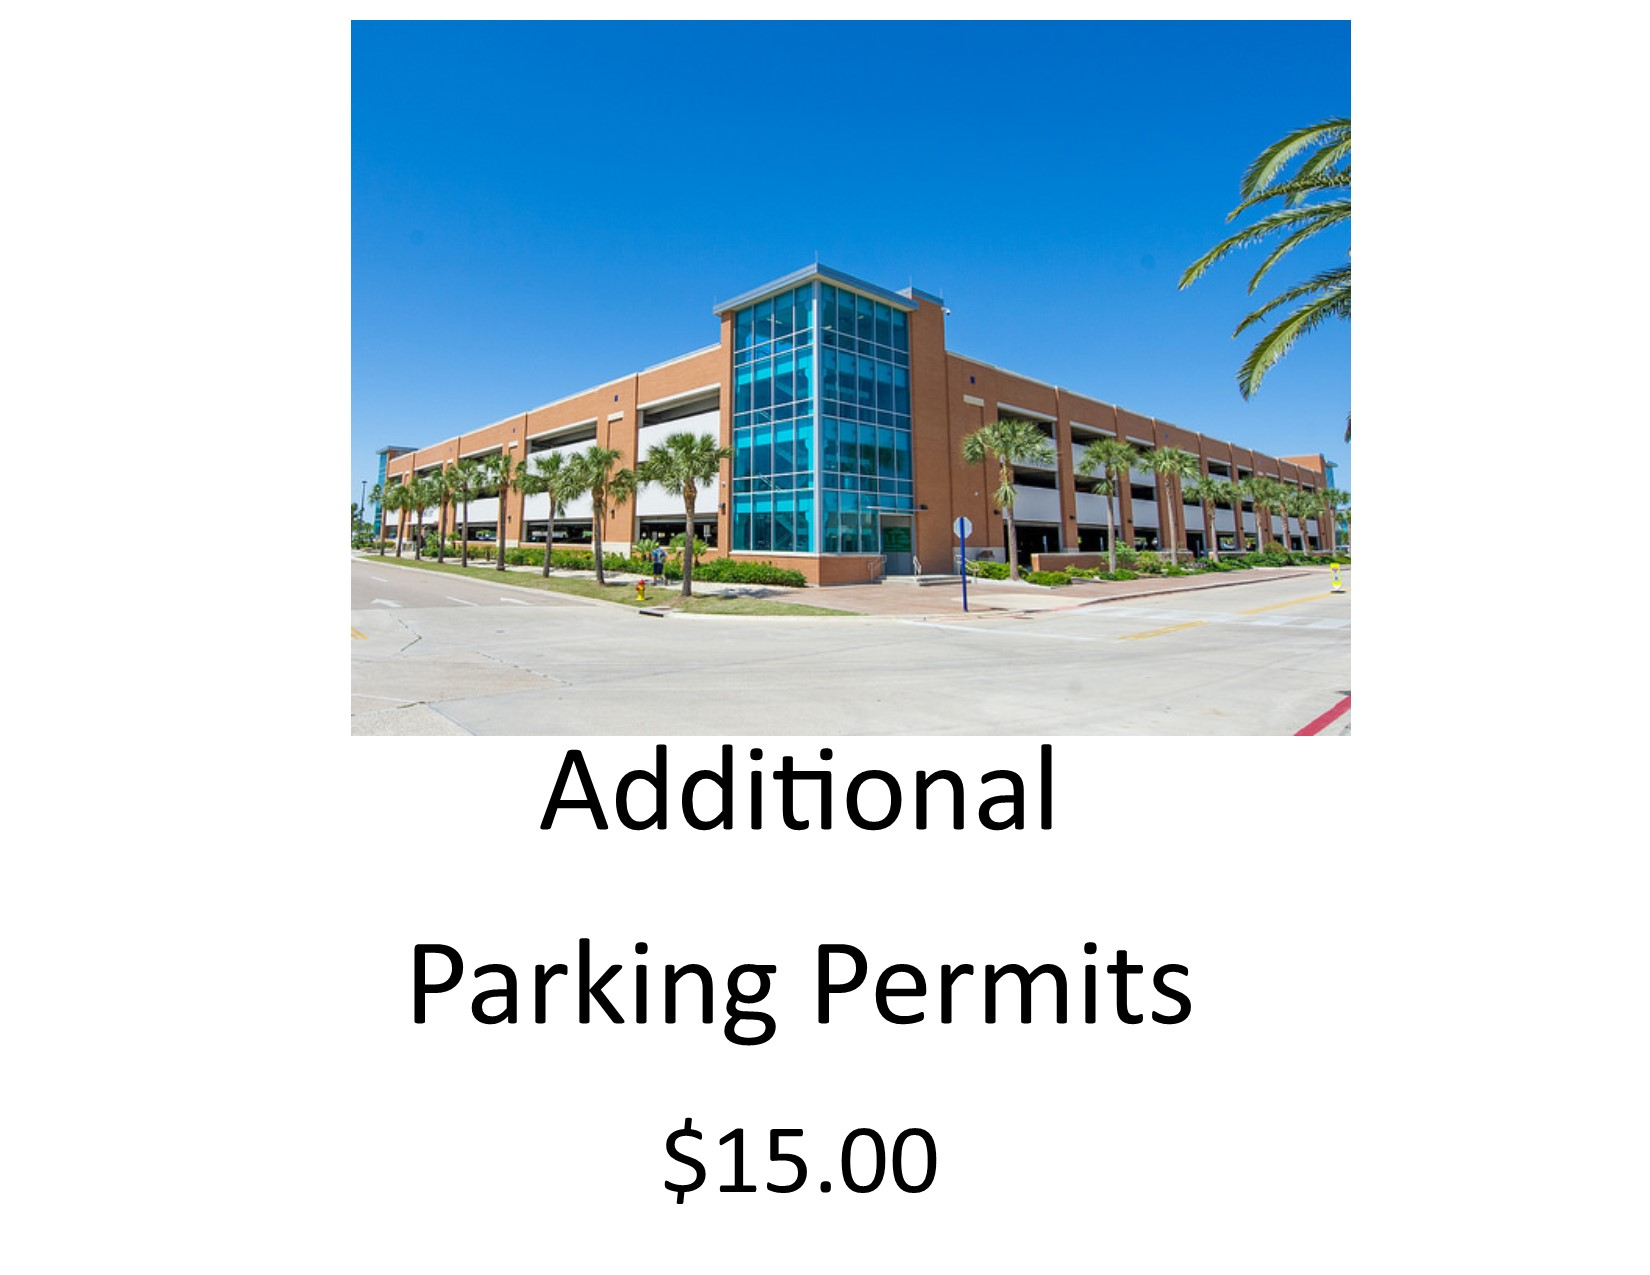 Additional Parking Permits